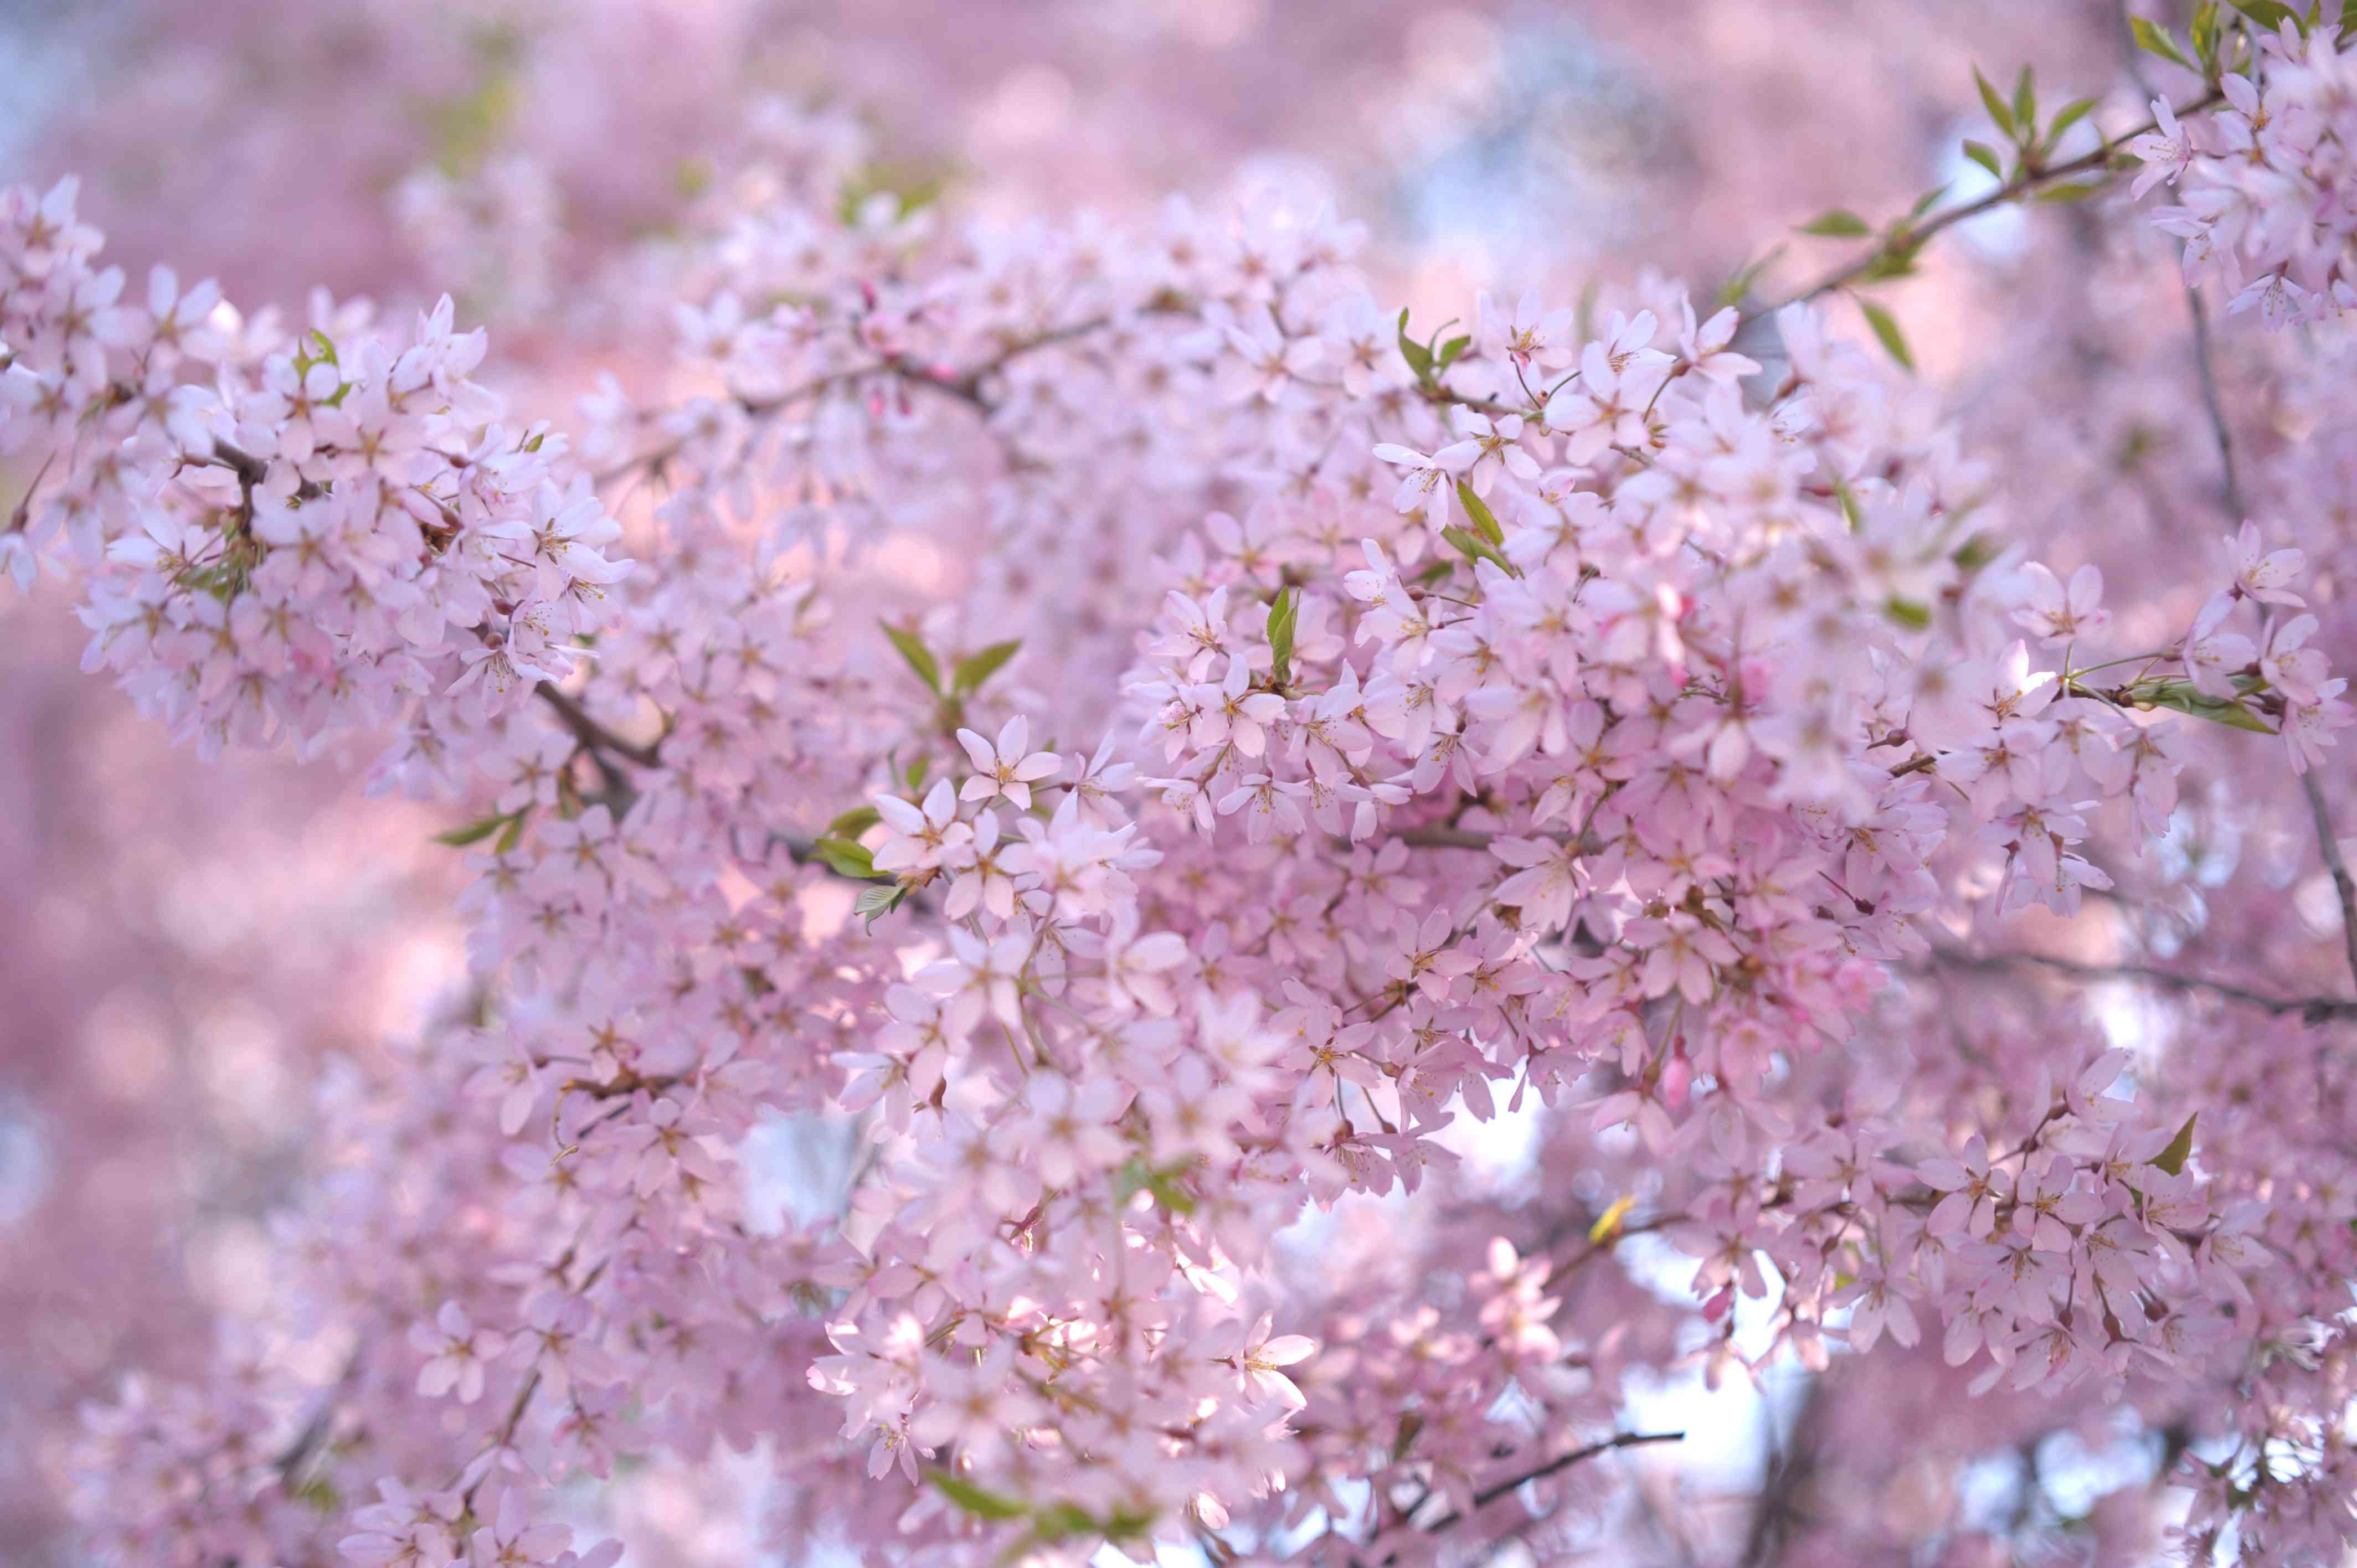 Weeping cherry tree with pink blossoms closeup